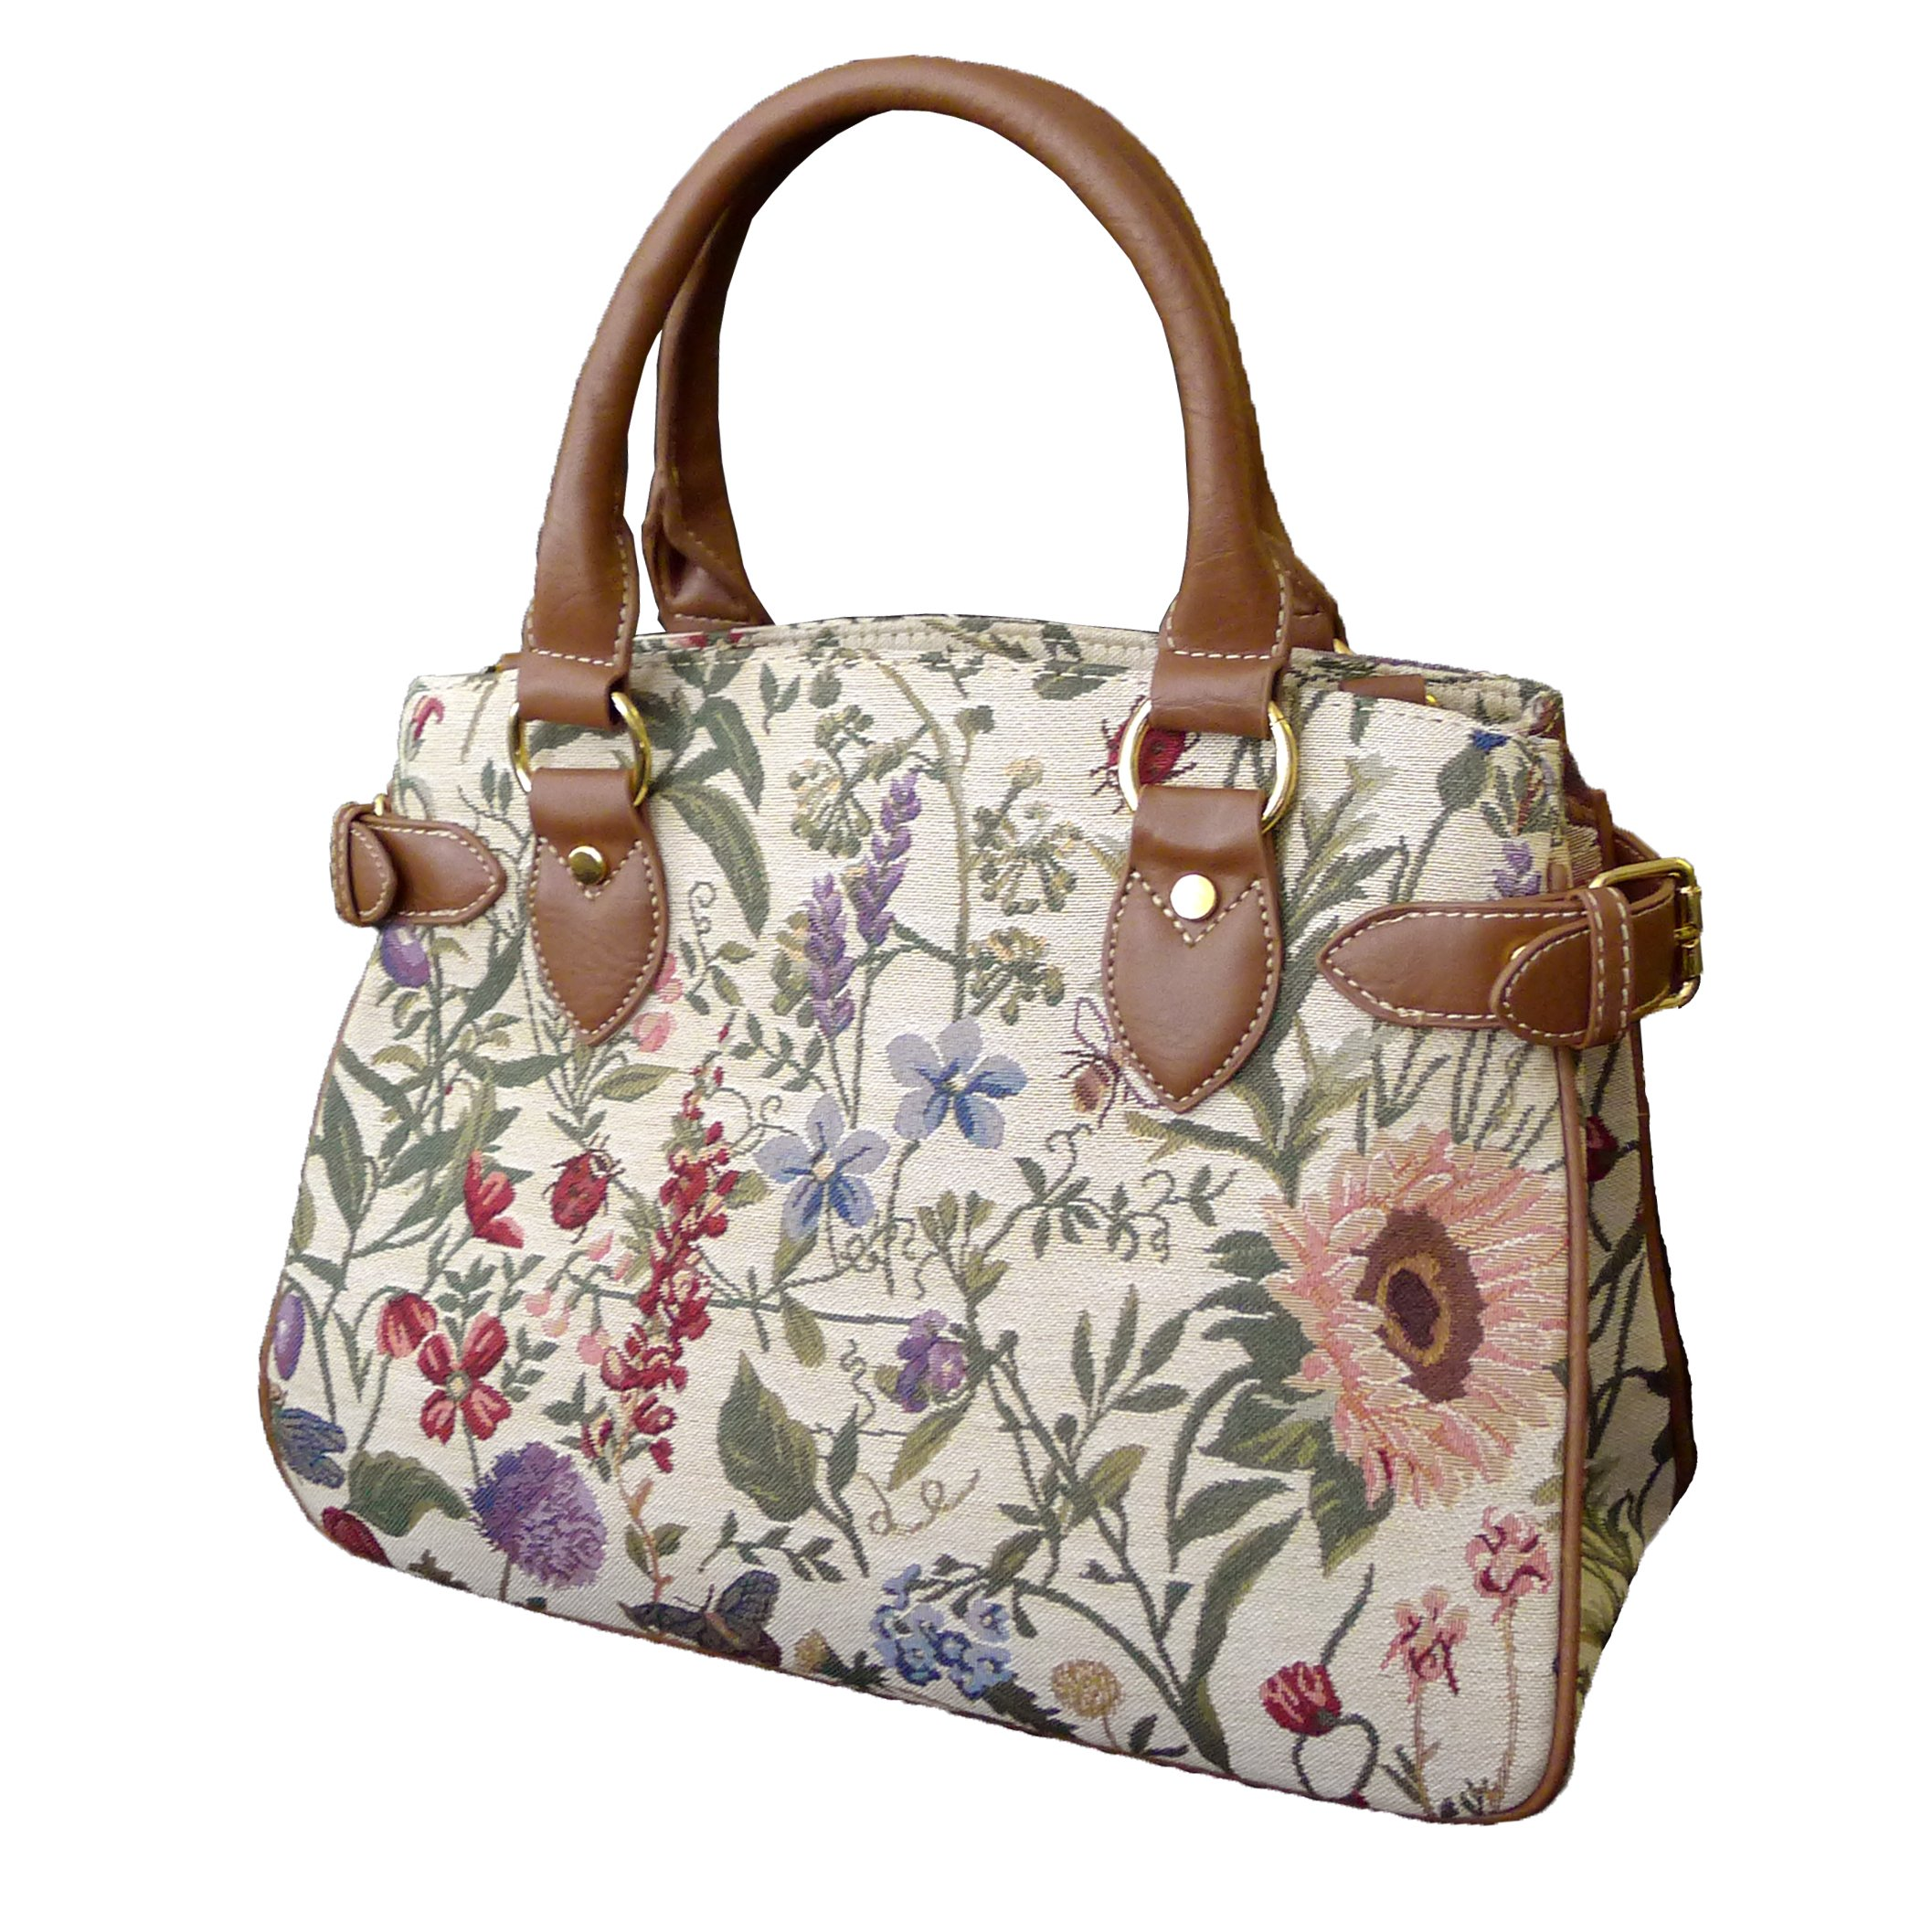 Signare 18873-Morning Morning Garden Center Compartment Purse, Tapestry